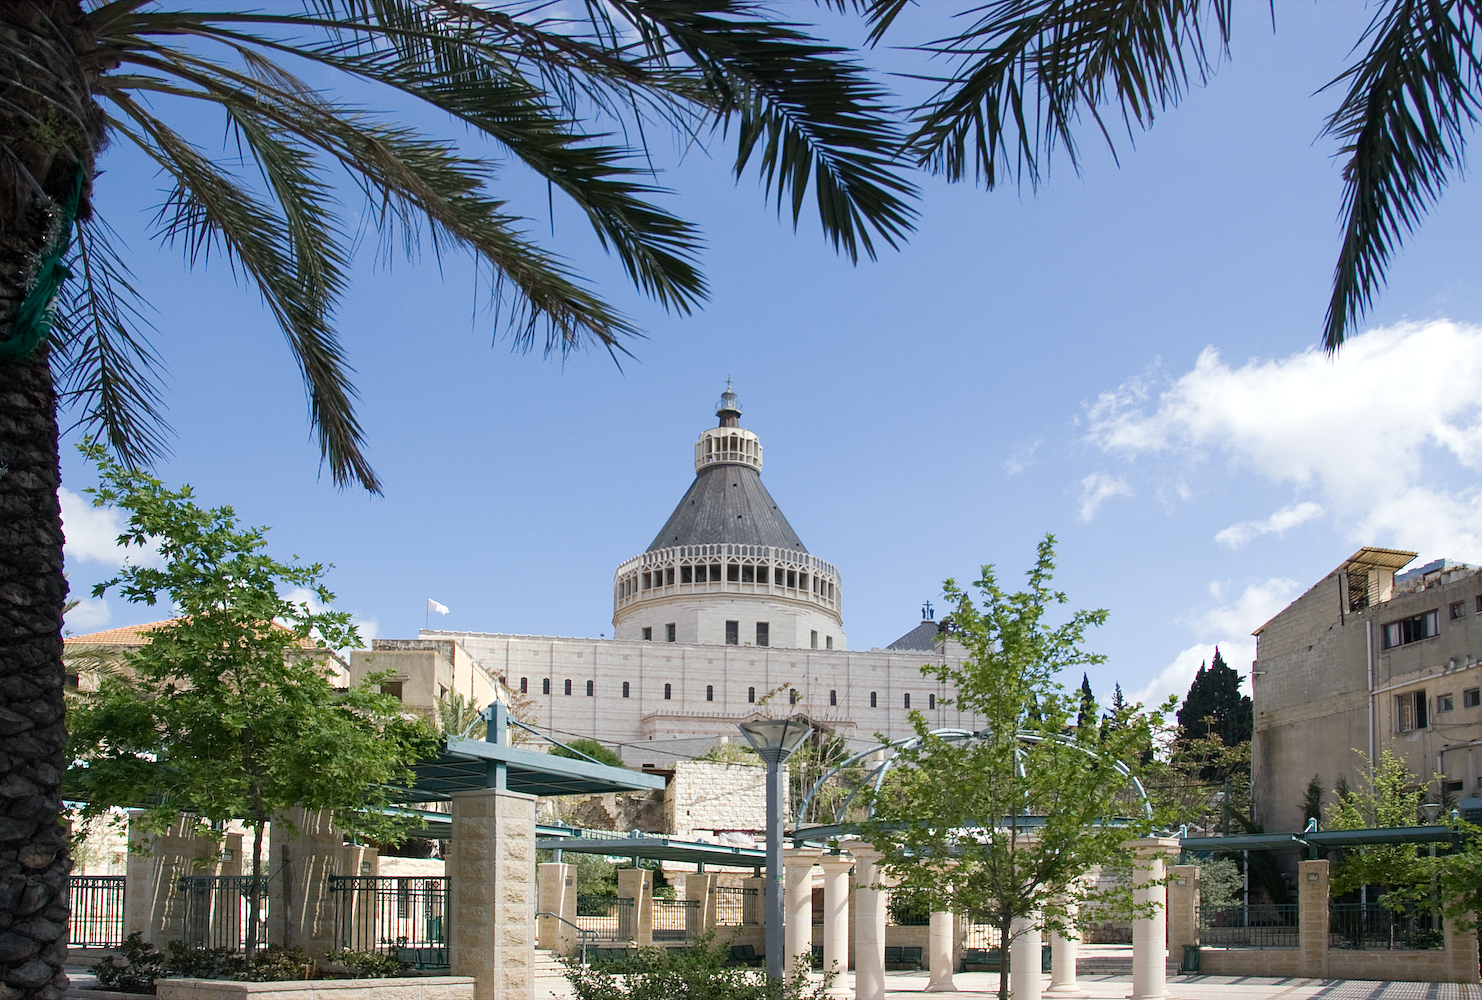 Nazareth - Church of the Annunciation / BWB-Images